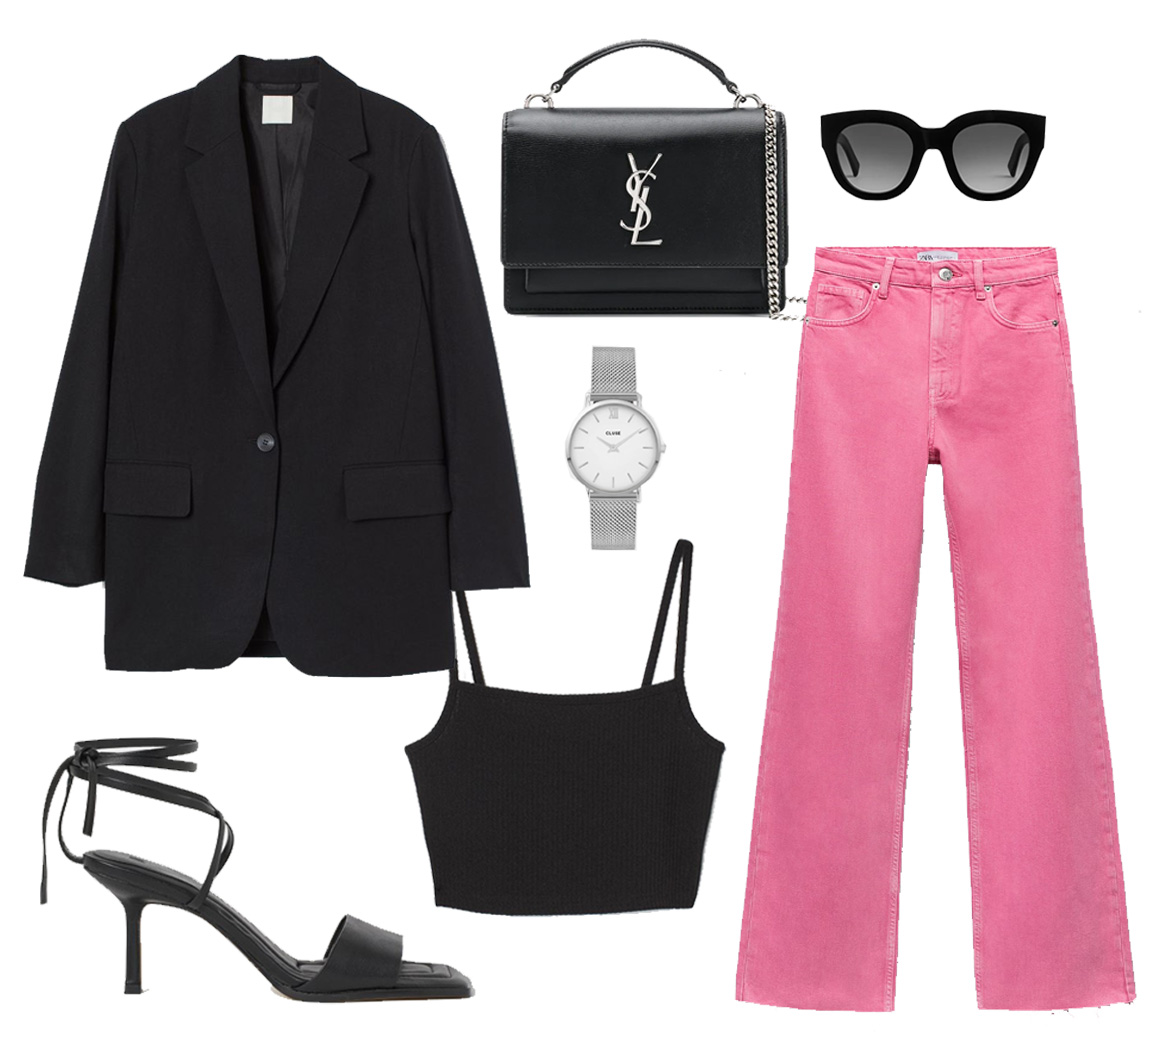 zara pink jeans outfit